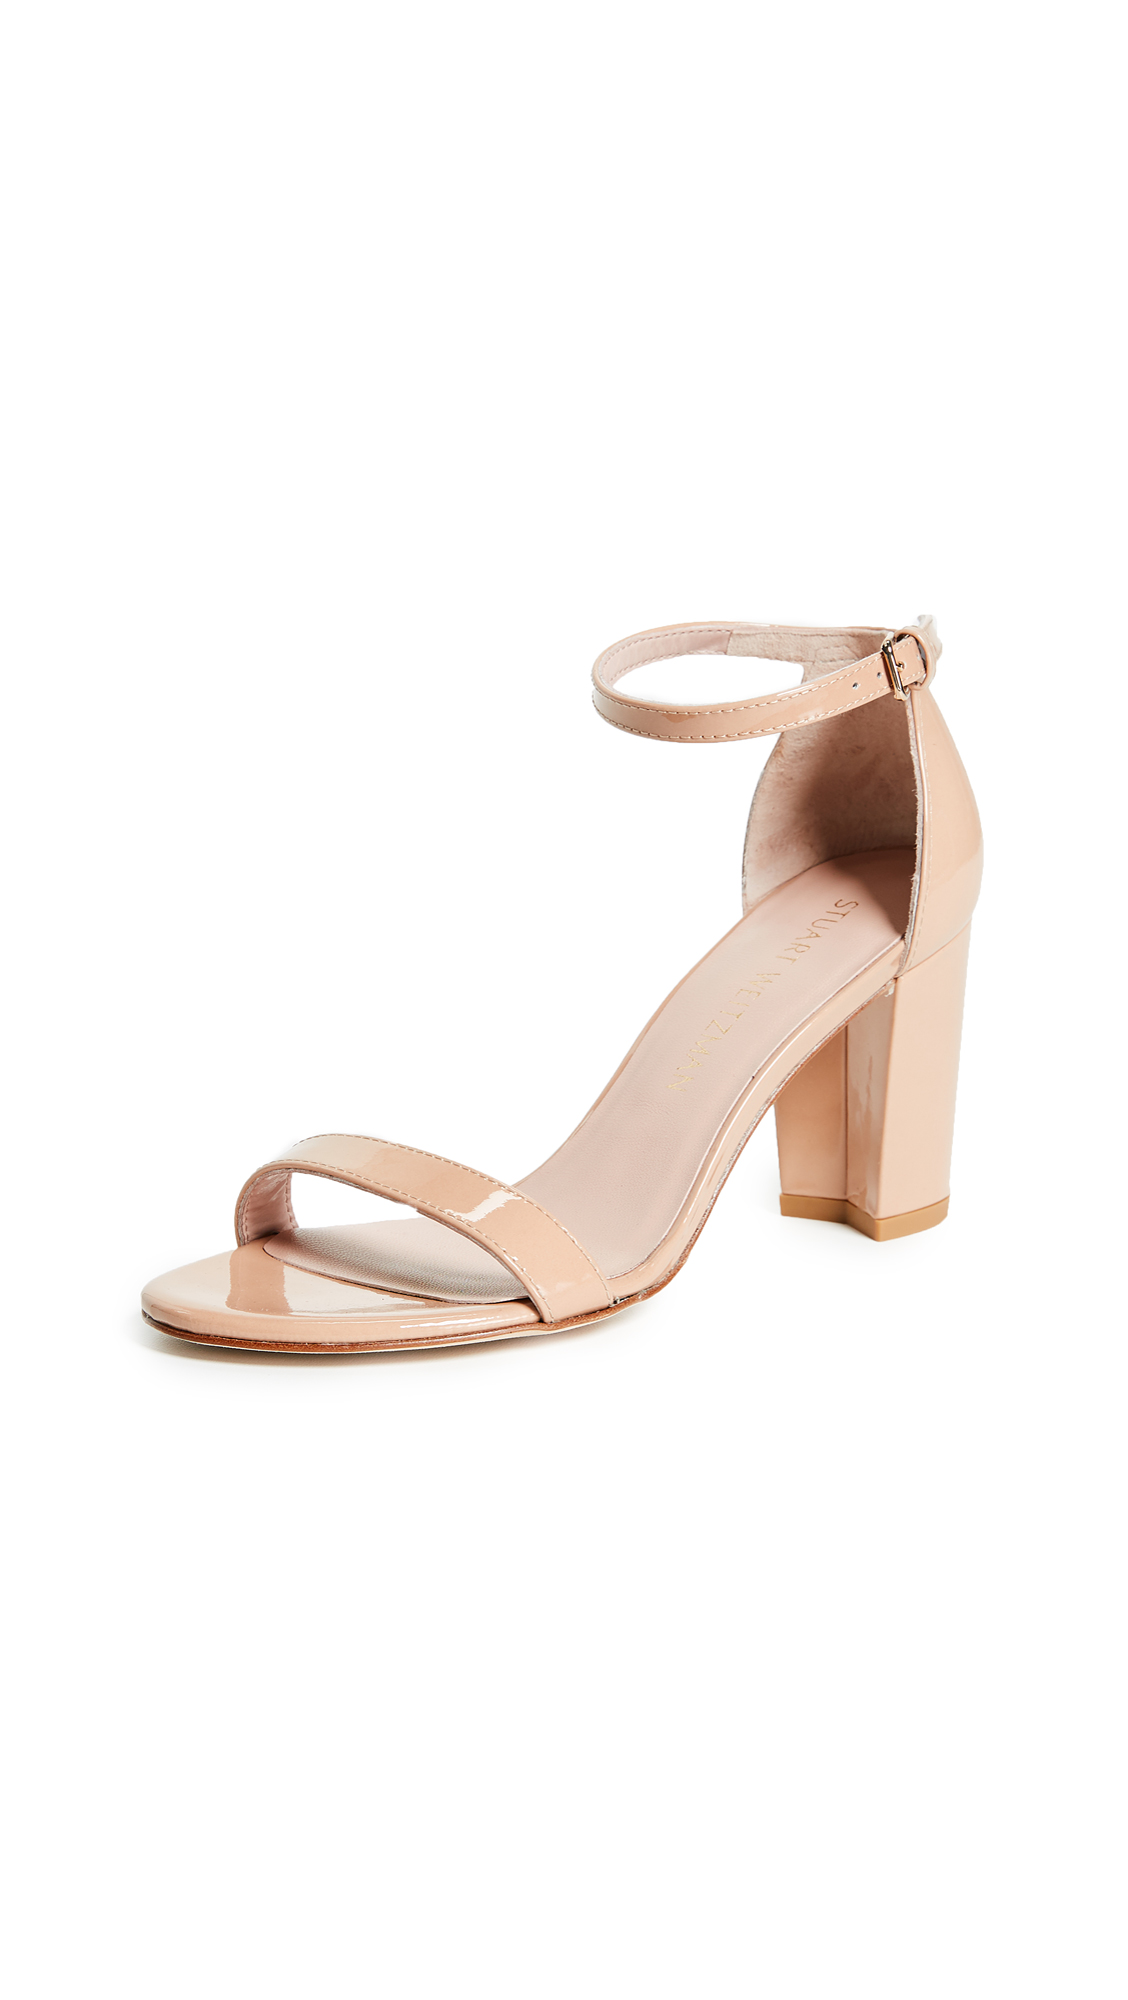 Stuart Weitzman Nearlynude Sandals - Adobe